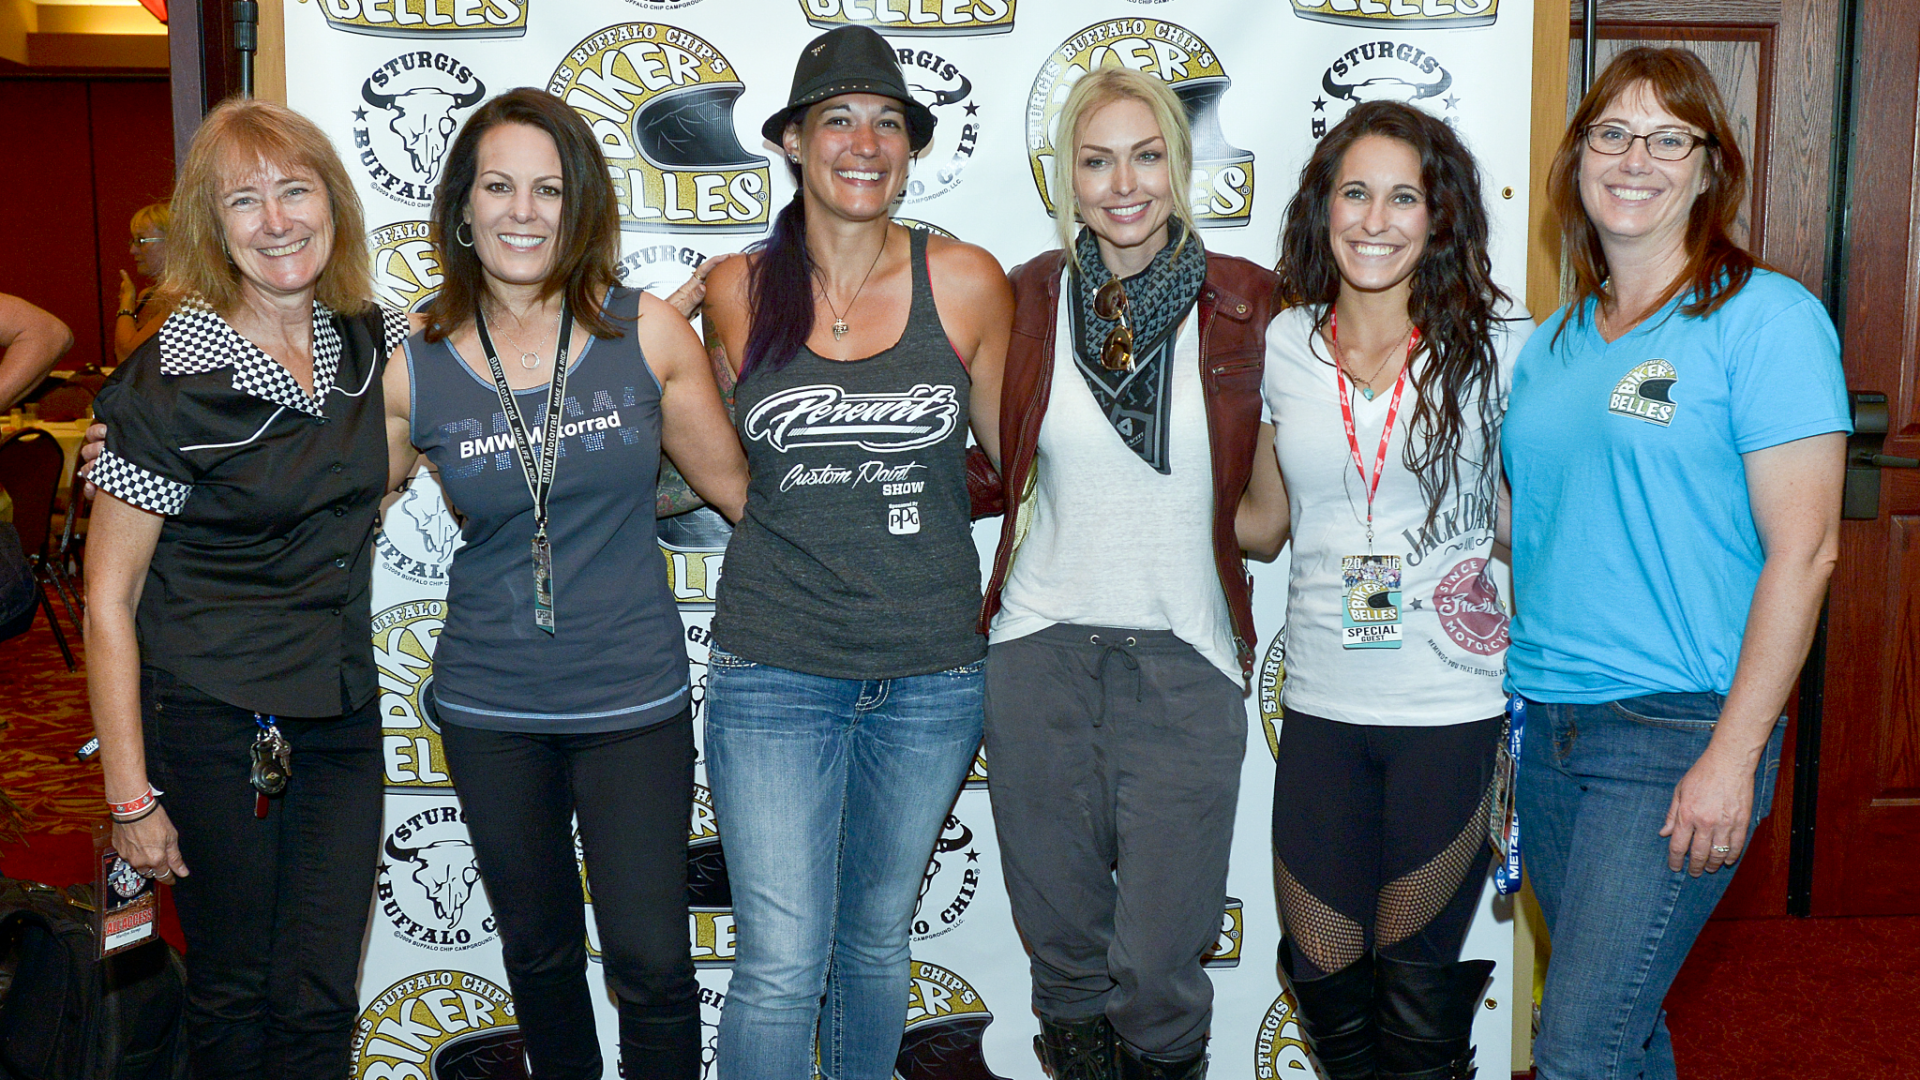 Sturgis Buffalo Chips 2017 Biker Belles Welcomes All To -1420